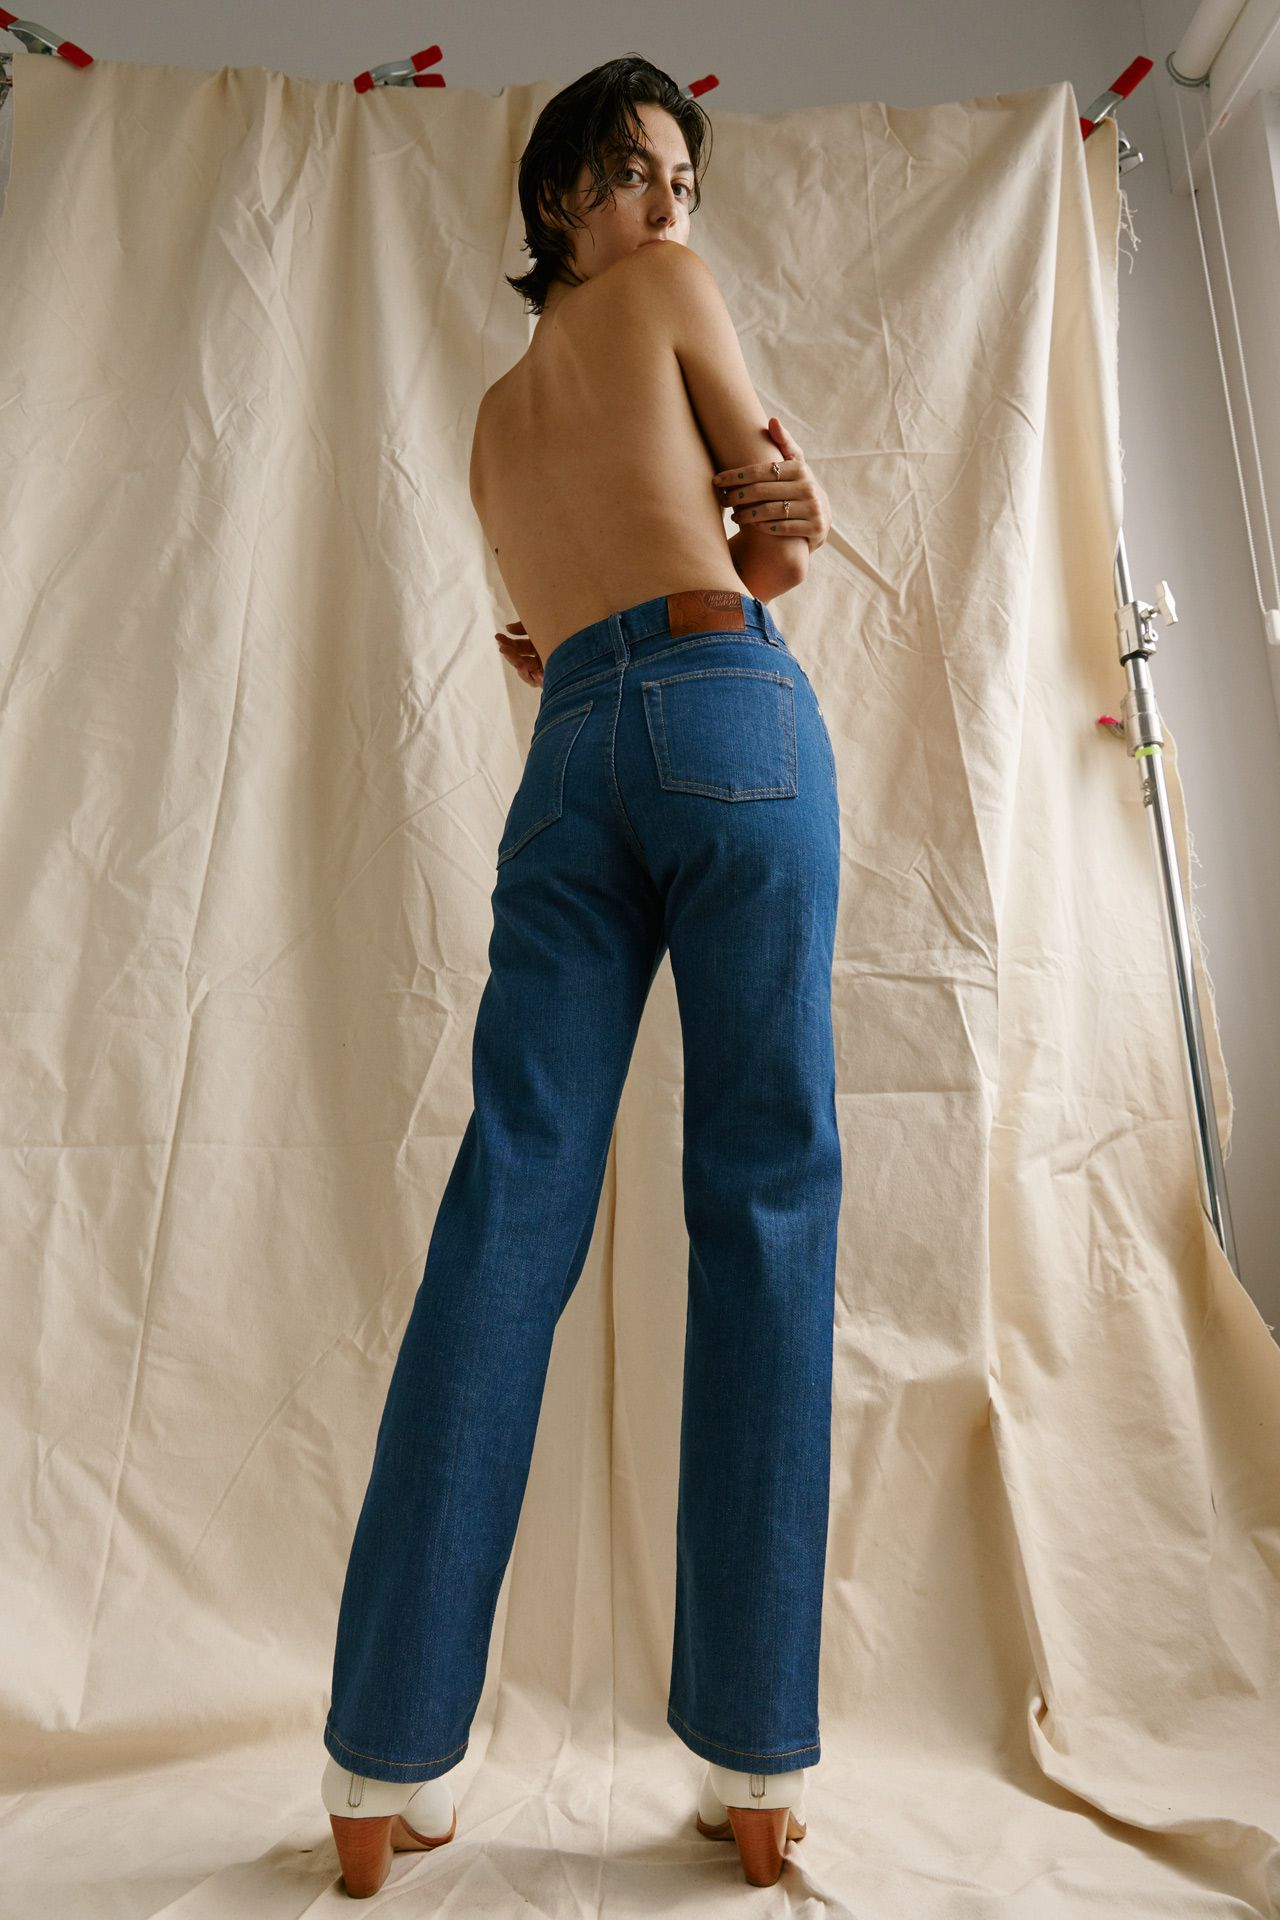 Premiere Adresse high fashion shop photographs by Kelly Jacob of woman model topless wearing high-waisted blue pants